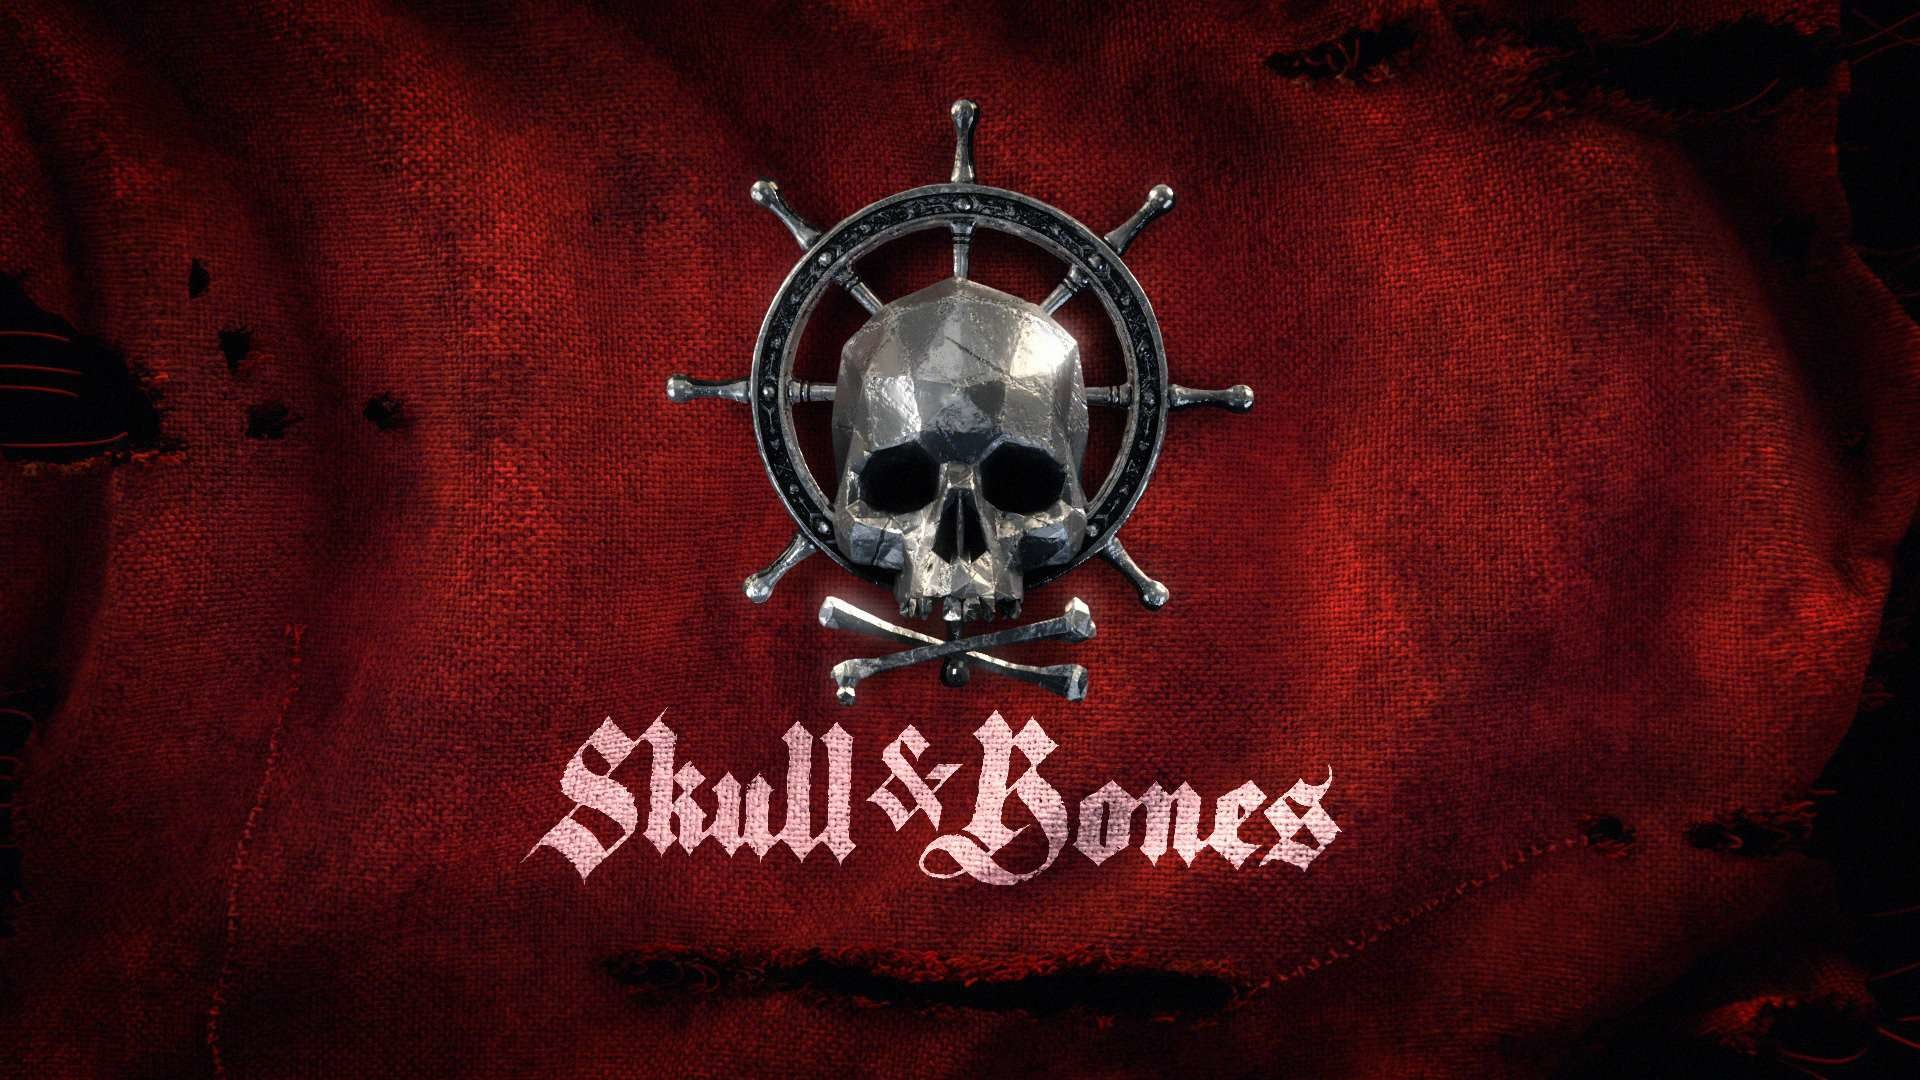 skull and bones logo wallpaper 73960